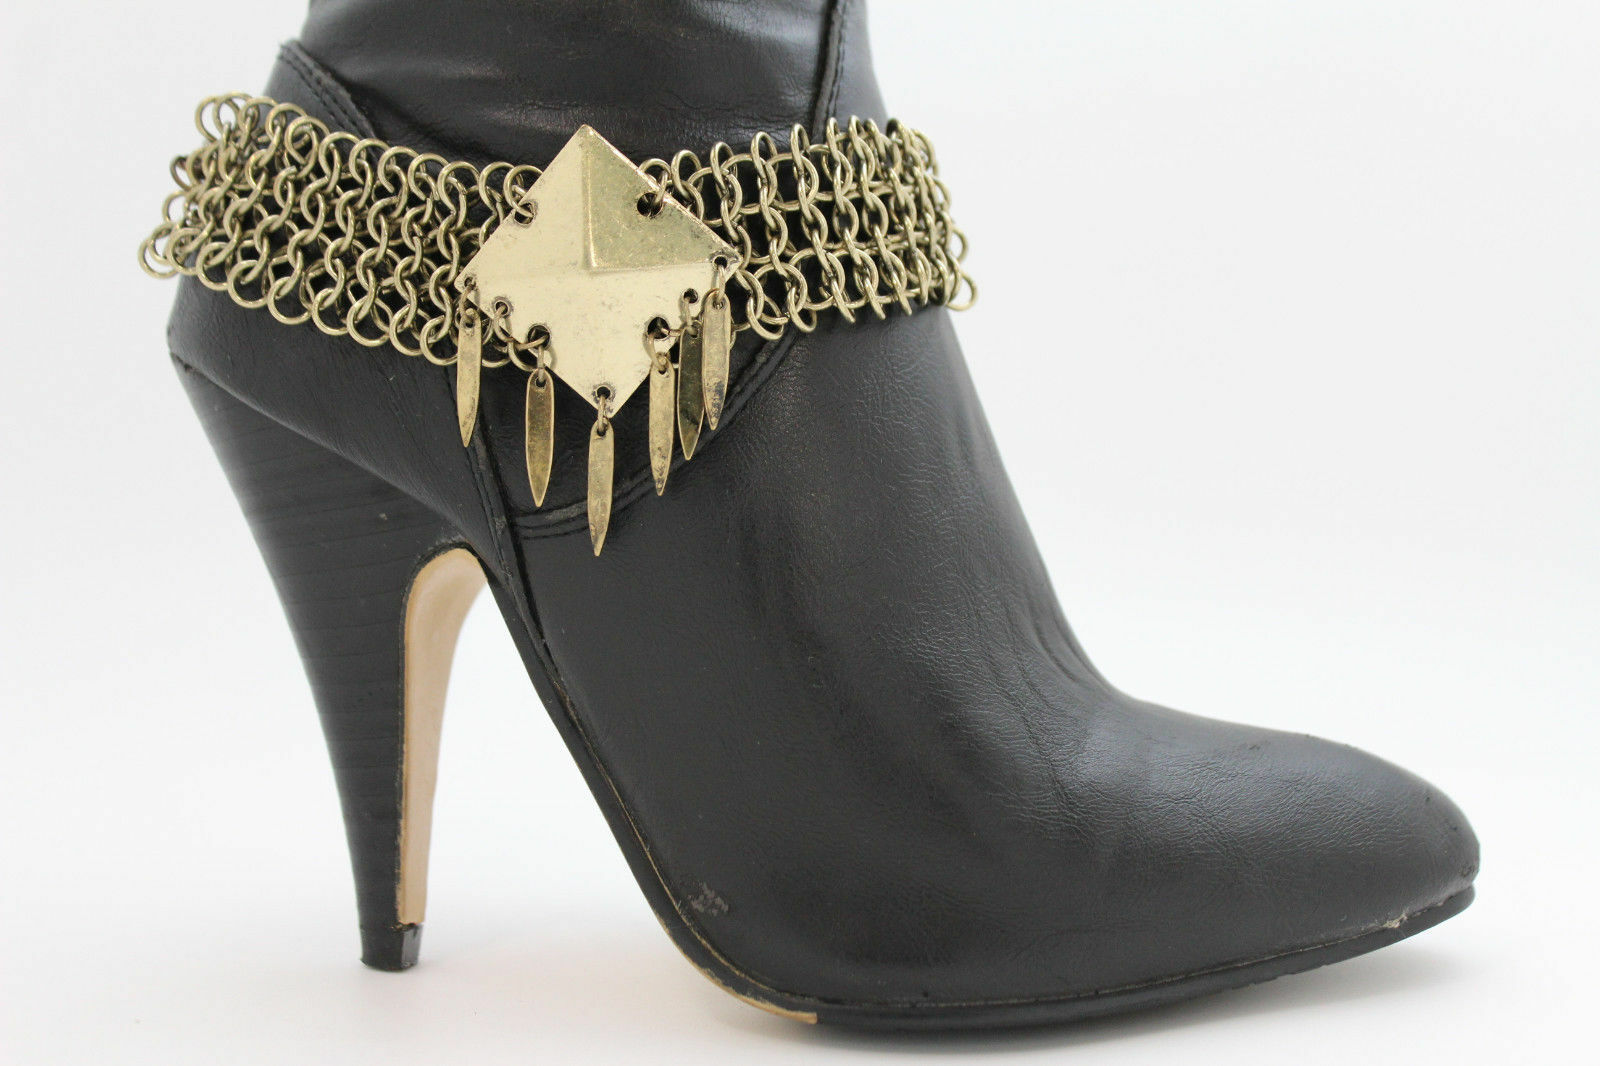 Women Fashion Jewelry Boot Bracelet Antique Gold Metal Chains Anklet Shoe Charm